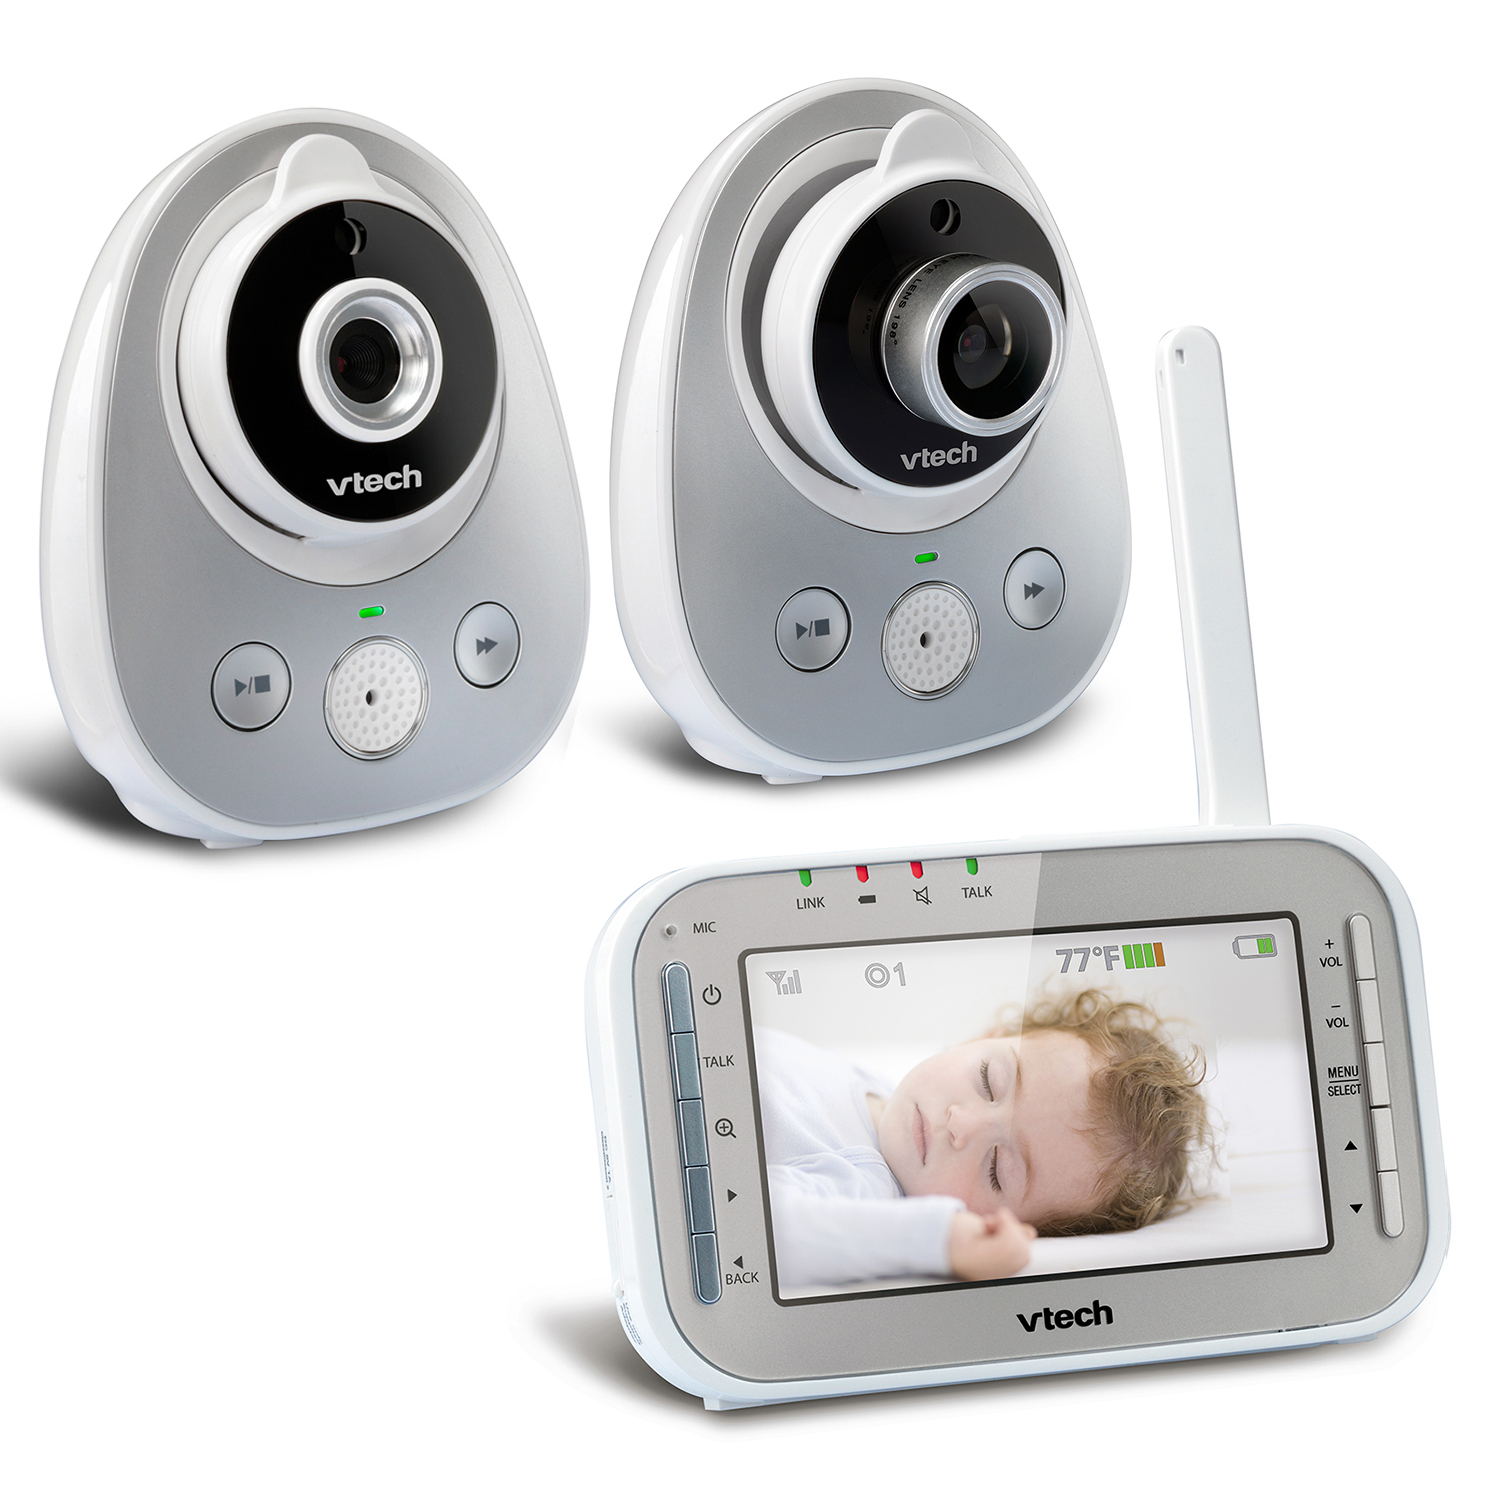 VTech VM342-2, Video Baby Monitor, Wide-Angle Lens, 2 Cameras by VTech